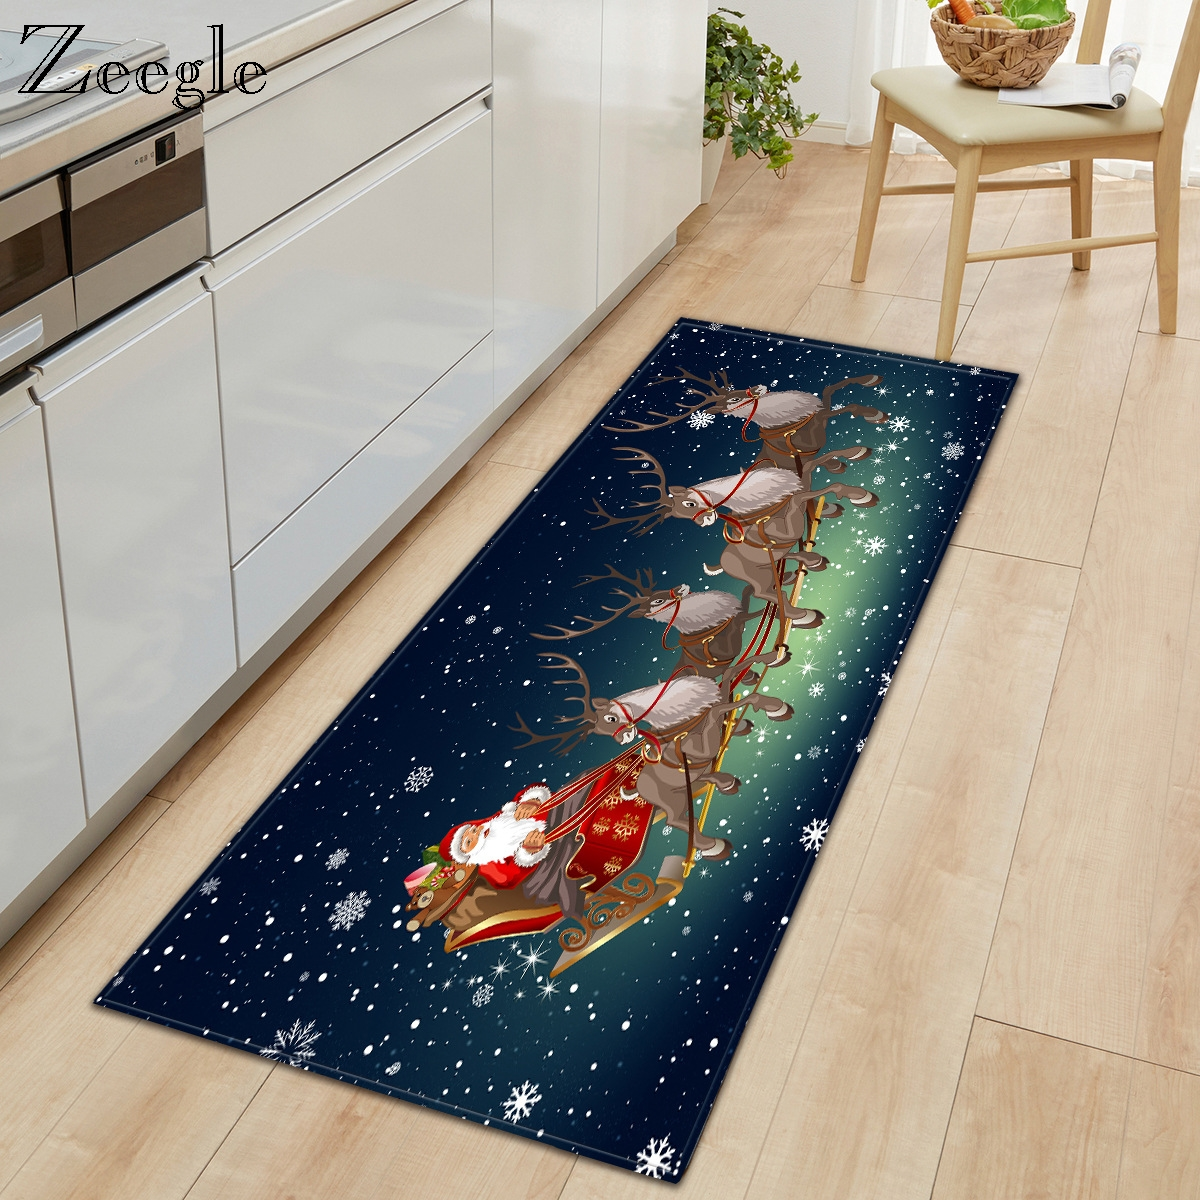 Zeegle Carpet Kitchen Rug Anti-slip Bathroom Doormat Shower Mat Hallway Rug Living Room Carpet Christmas Indoor Carpet Floor Rug